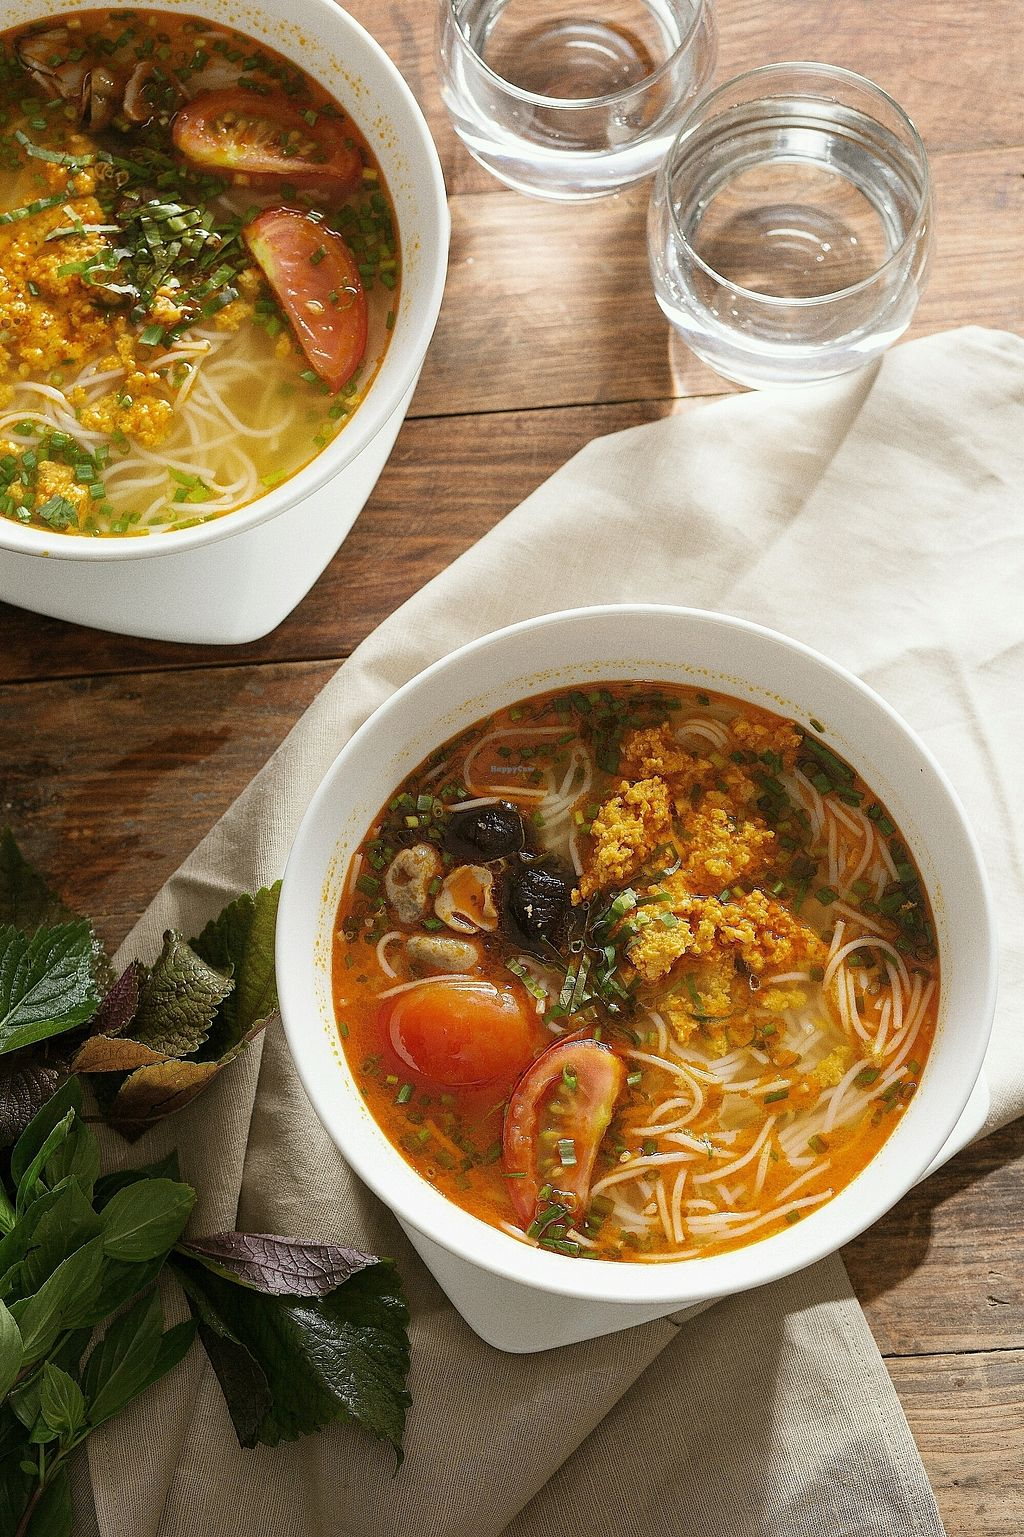 """Photo of Vegan Kitchen  by <a href=""""/members/profile/KhanhAnitya"""">KhanhAnitya</a> <br/>Bún riêu- Rice noodles soup with vegan crab meat <br/> November 9, 2017  - <a href='/contact/abuse/image/91953/323534'>Report</a>"""